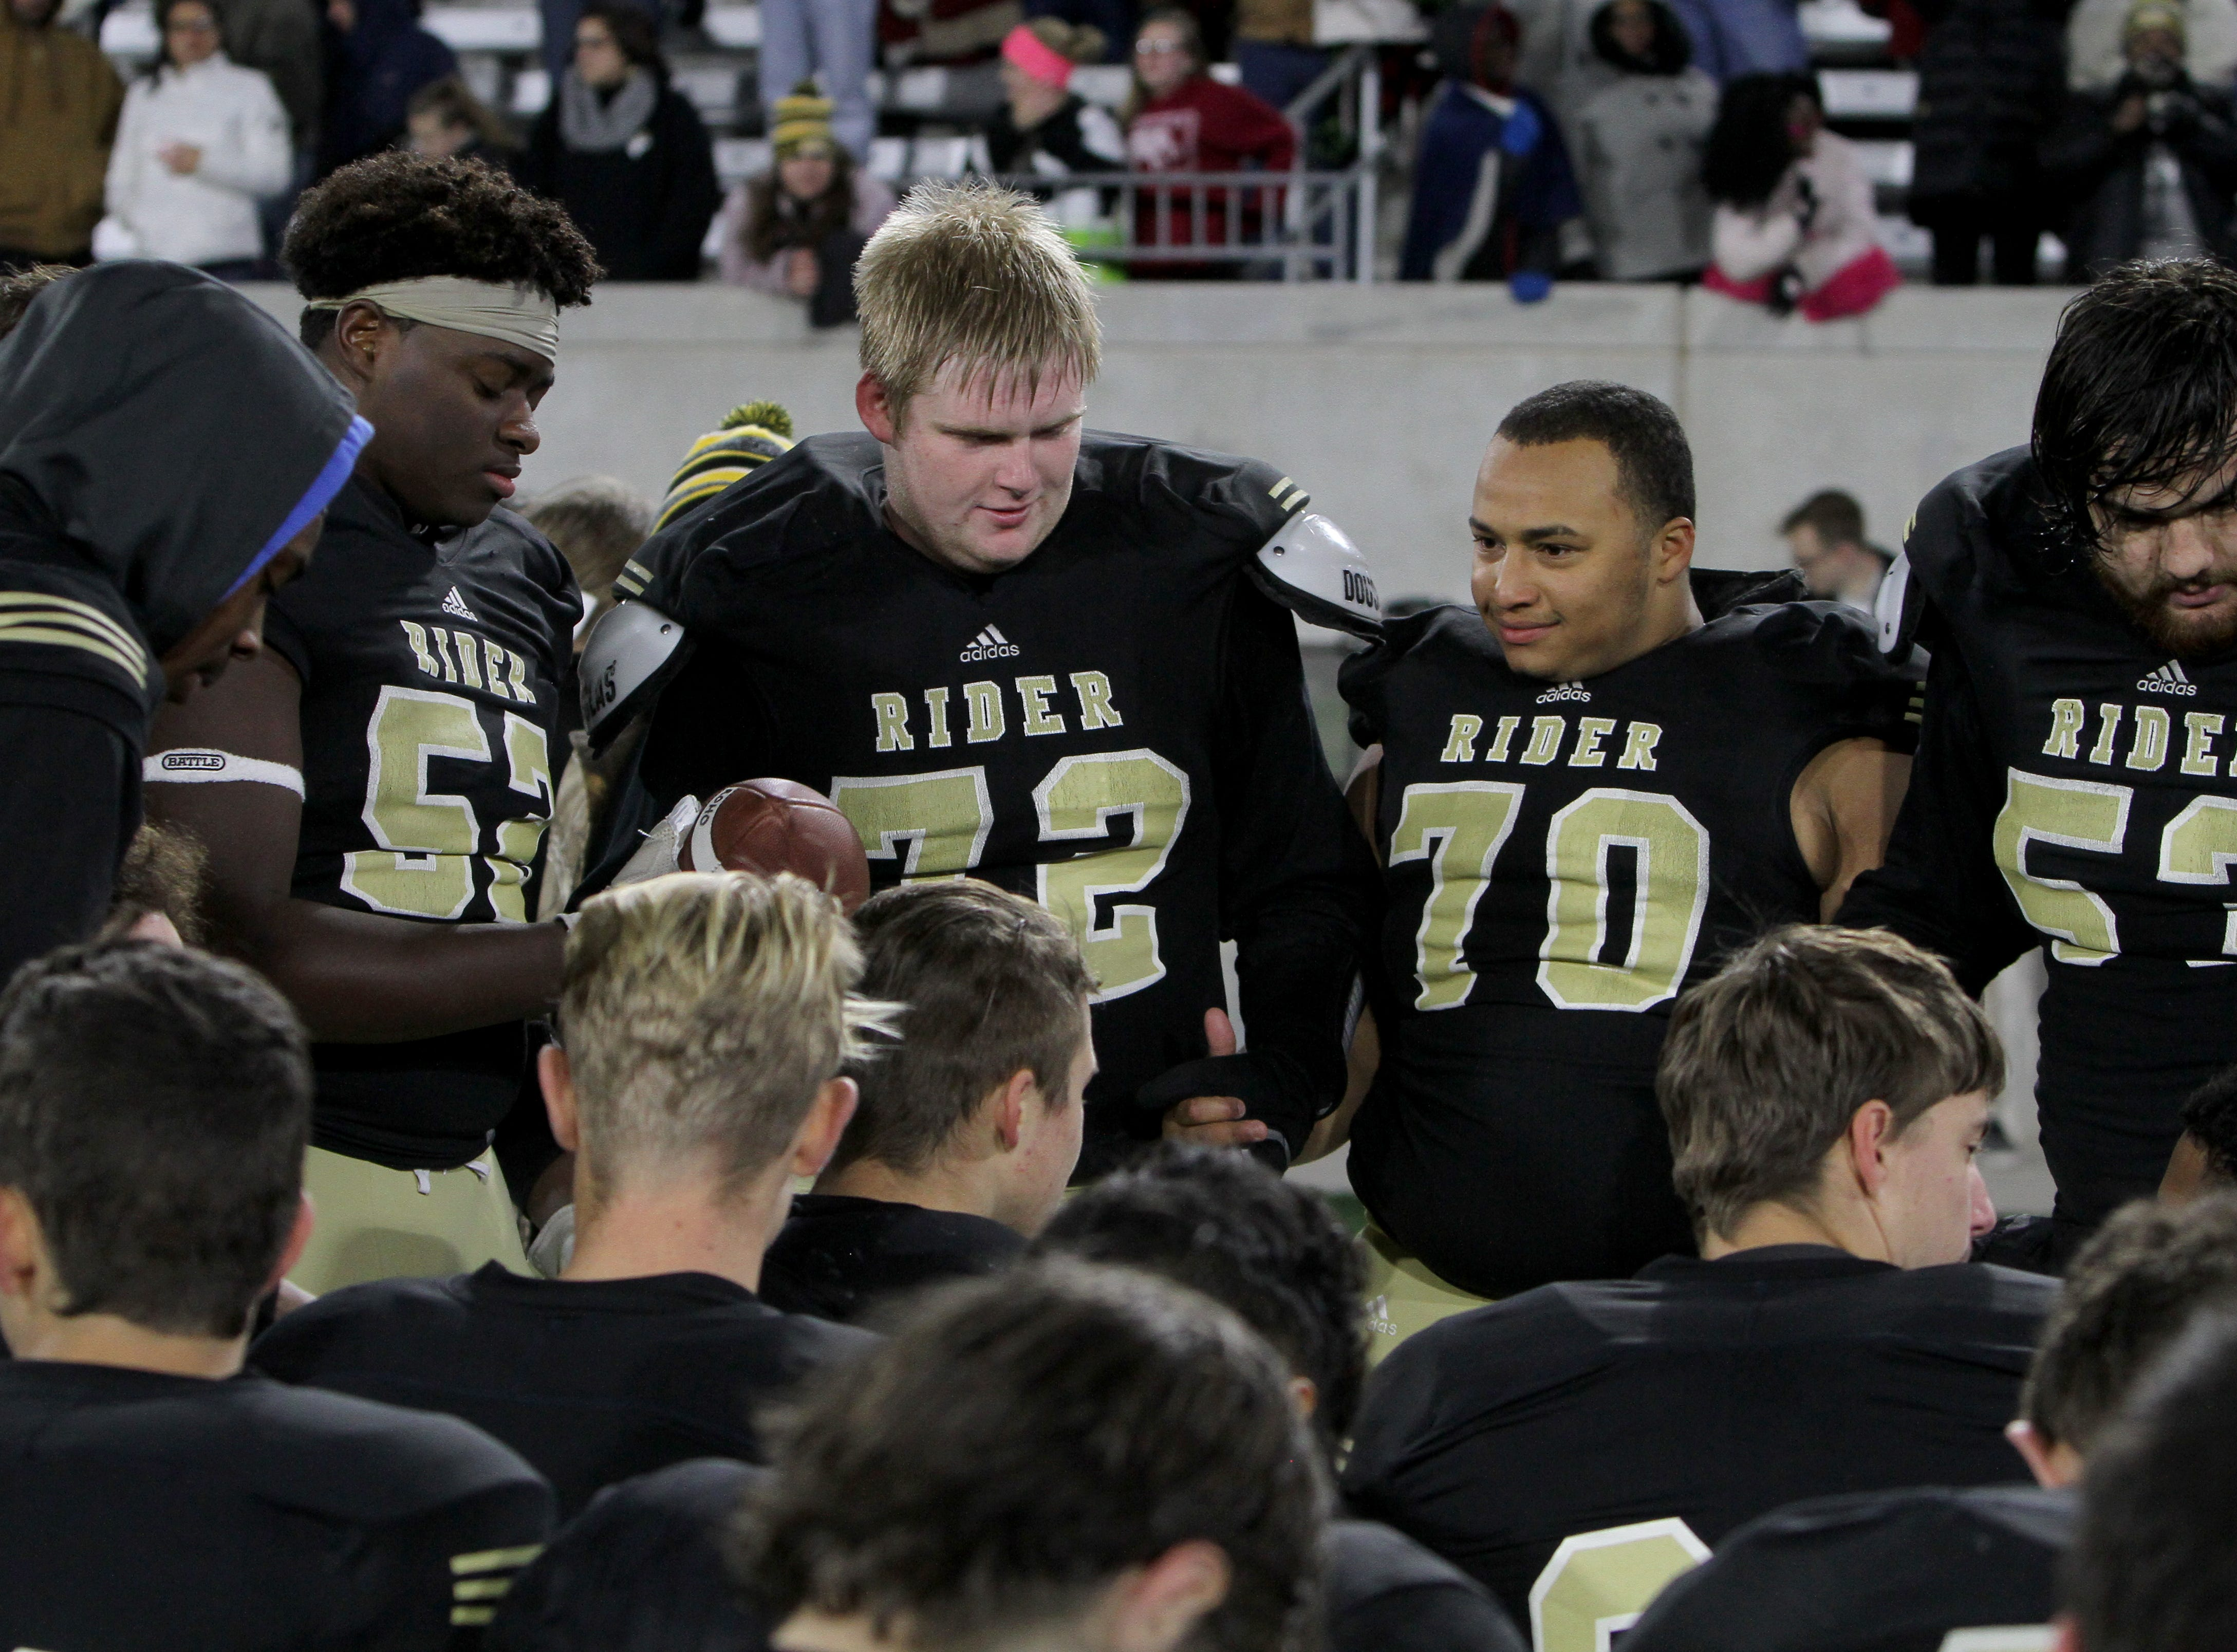 Rider's Taikorean Phillips, left, Dawson Hale, Aaron Matthews and Jr Ewing are part of the offensive line that was given the game ball after the Raiders win over Lubbock Cooper Thursday, Dec. 6, 2018, at Wildcats Stadium in Abilene. The Raiders defeated the Pirates 38-35.